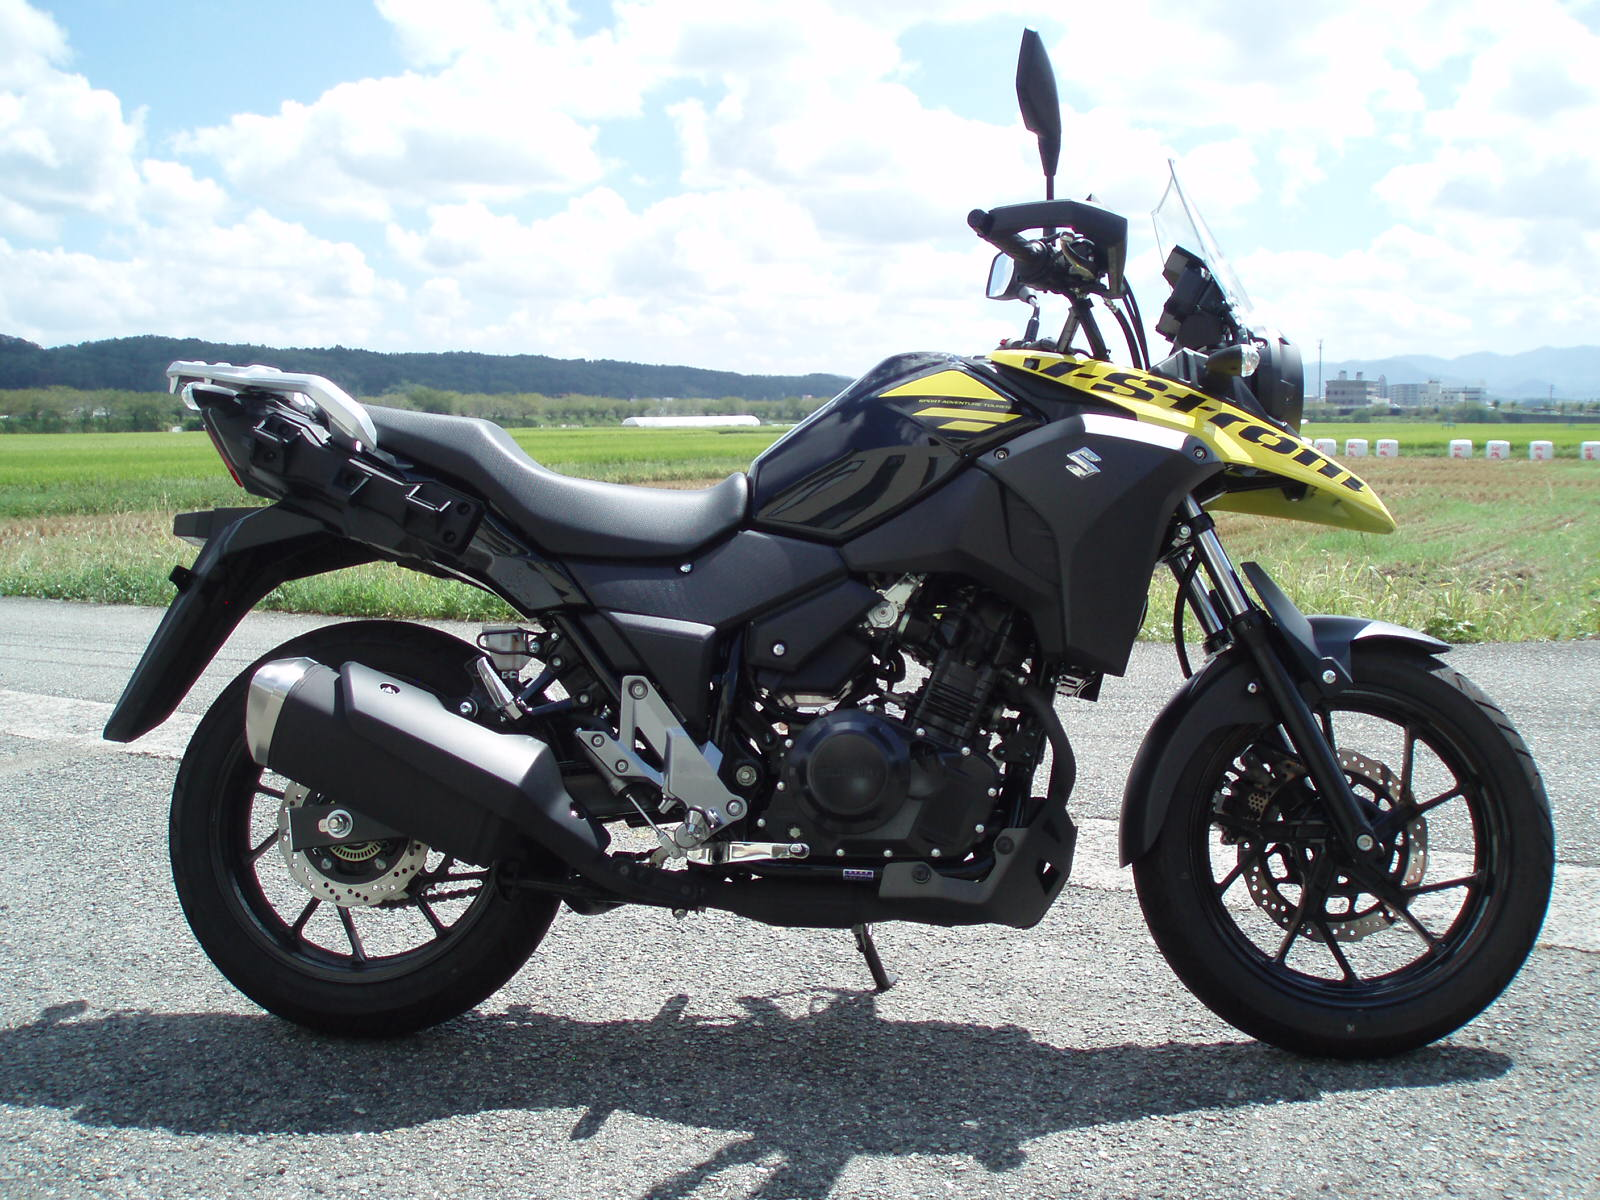 '17Vストローム250FI ETC2.0 SOLD OUT